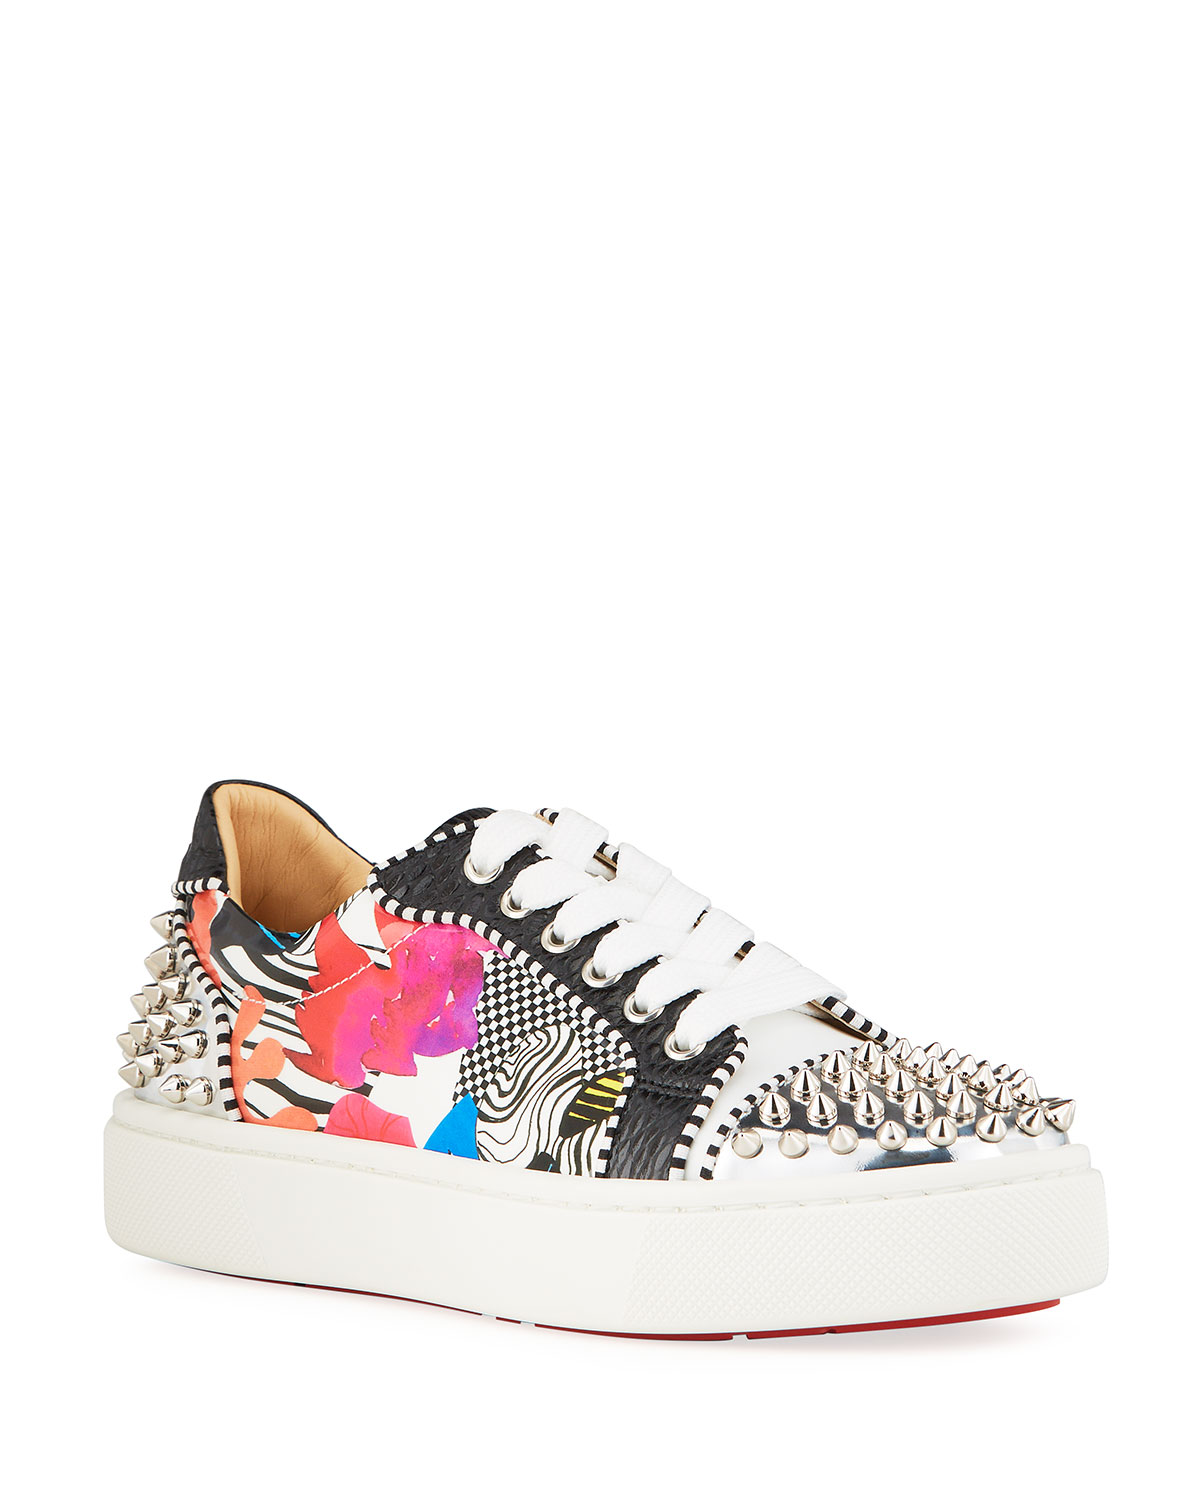 Christian Louboutin VIERISSIMA MULTI PATTERN SPIKE RED SOLE SNEAKERS